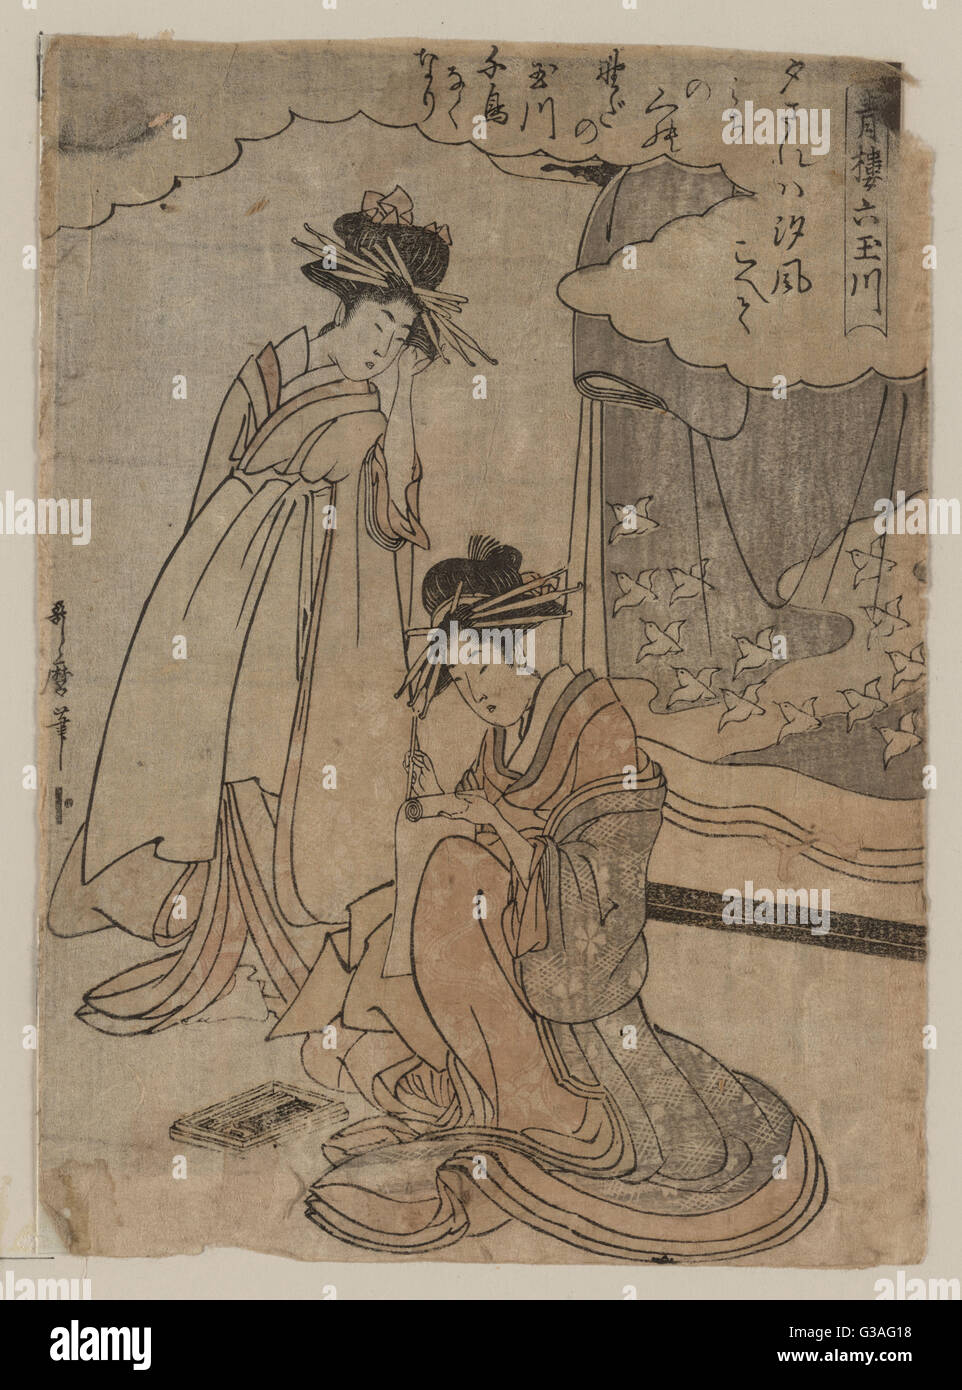 plovers print shows two women one kneeling and writing on a scroll